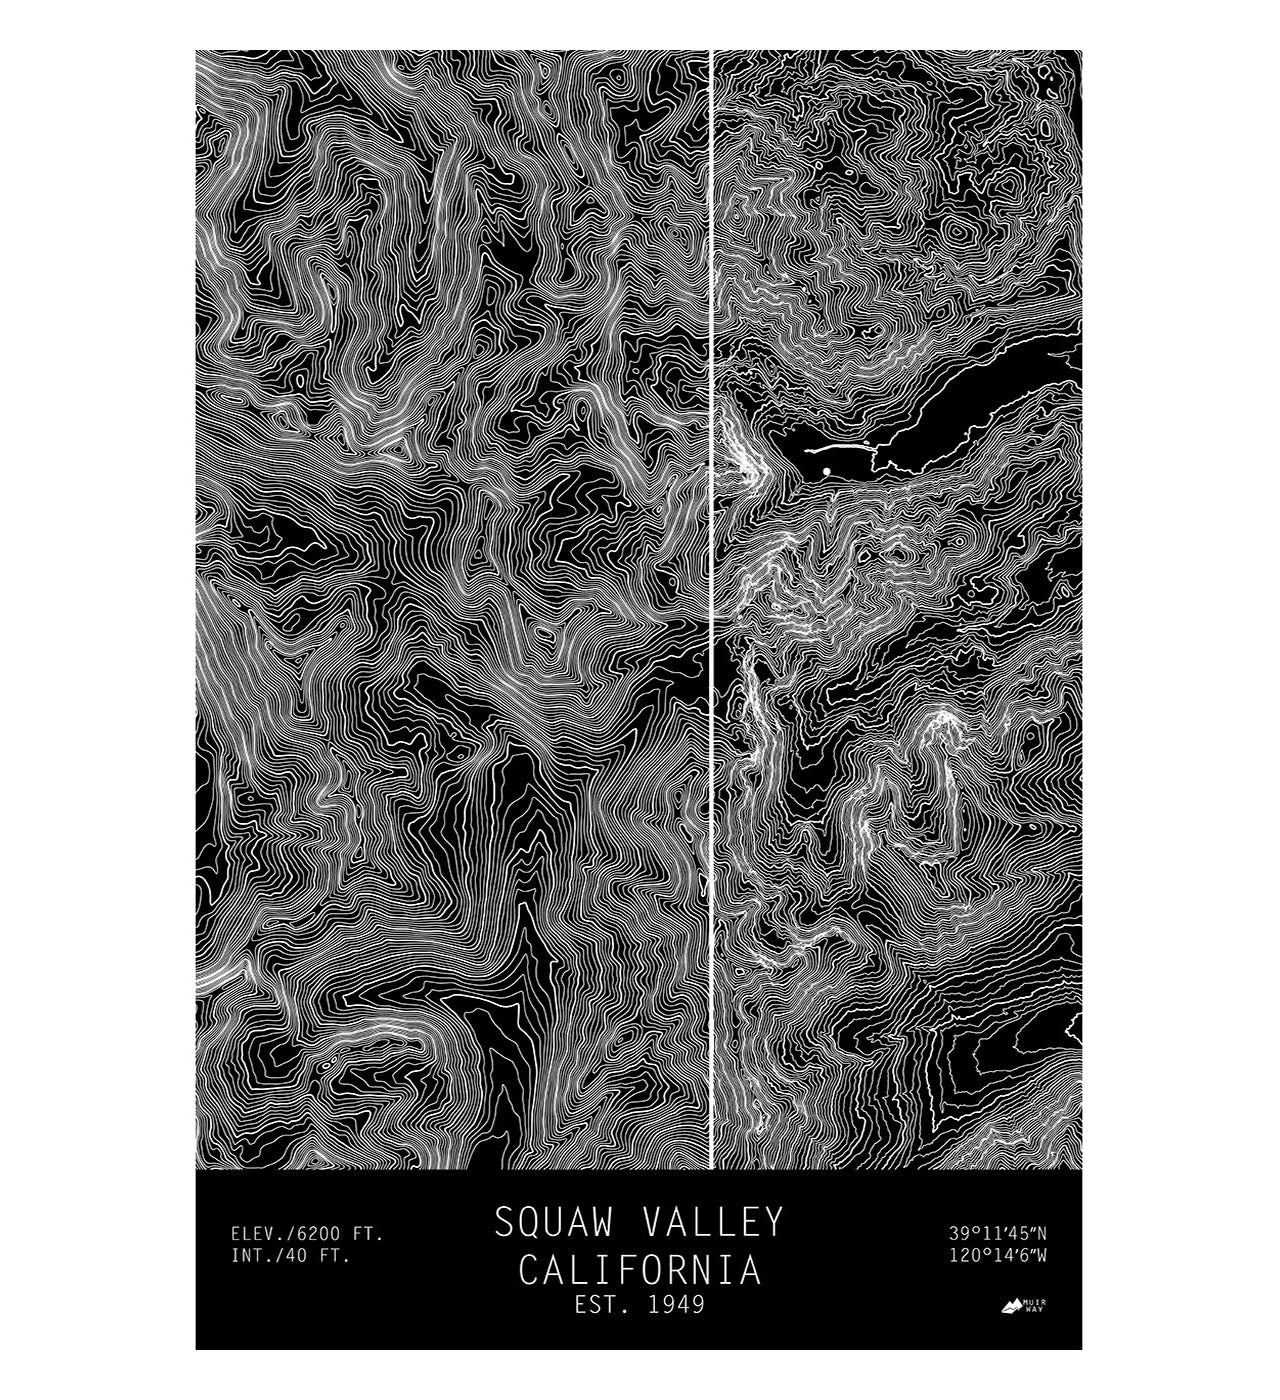 Squaw Valley, California-TOPO Series Map - Muir Way on